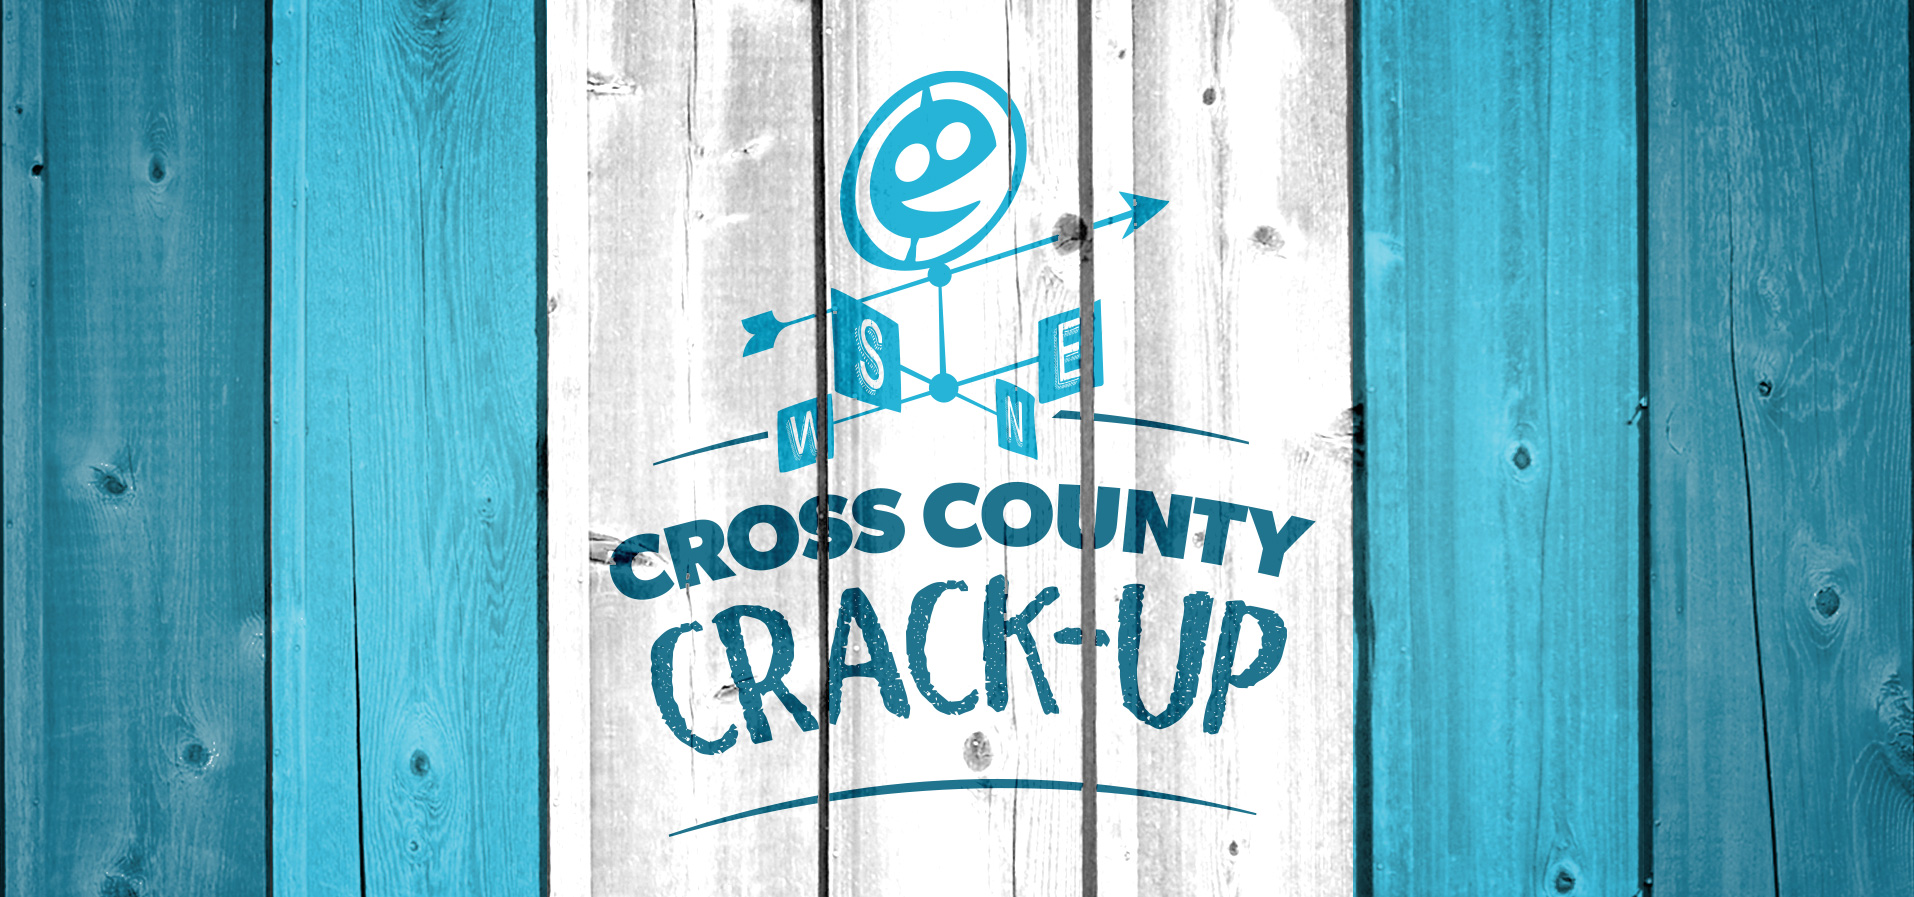 CROSS COUNTY CRACK-UP – October 24th